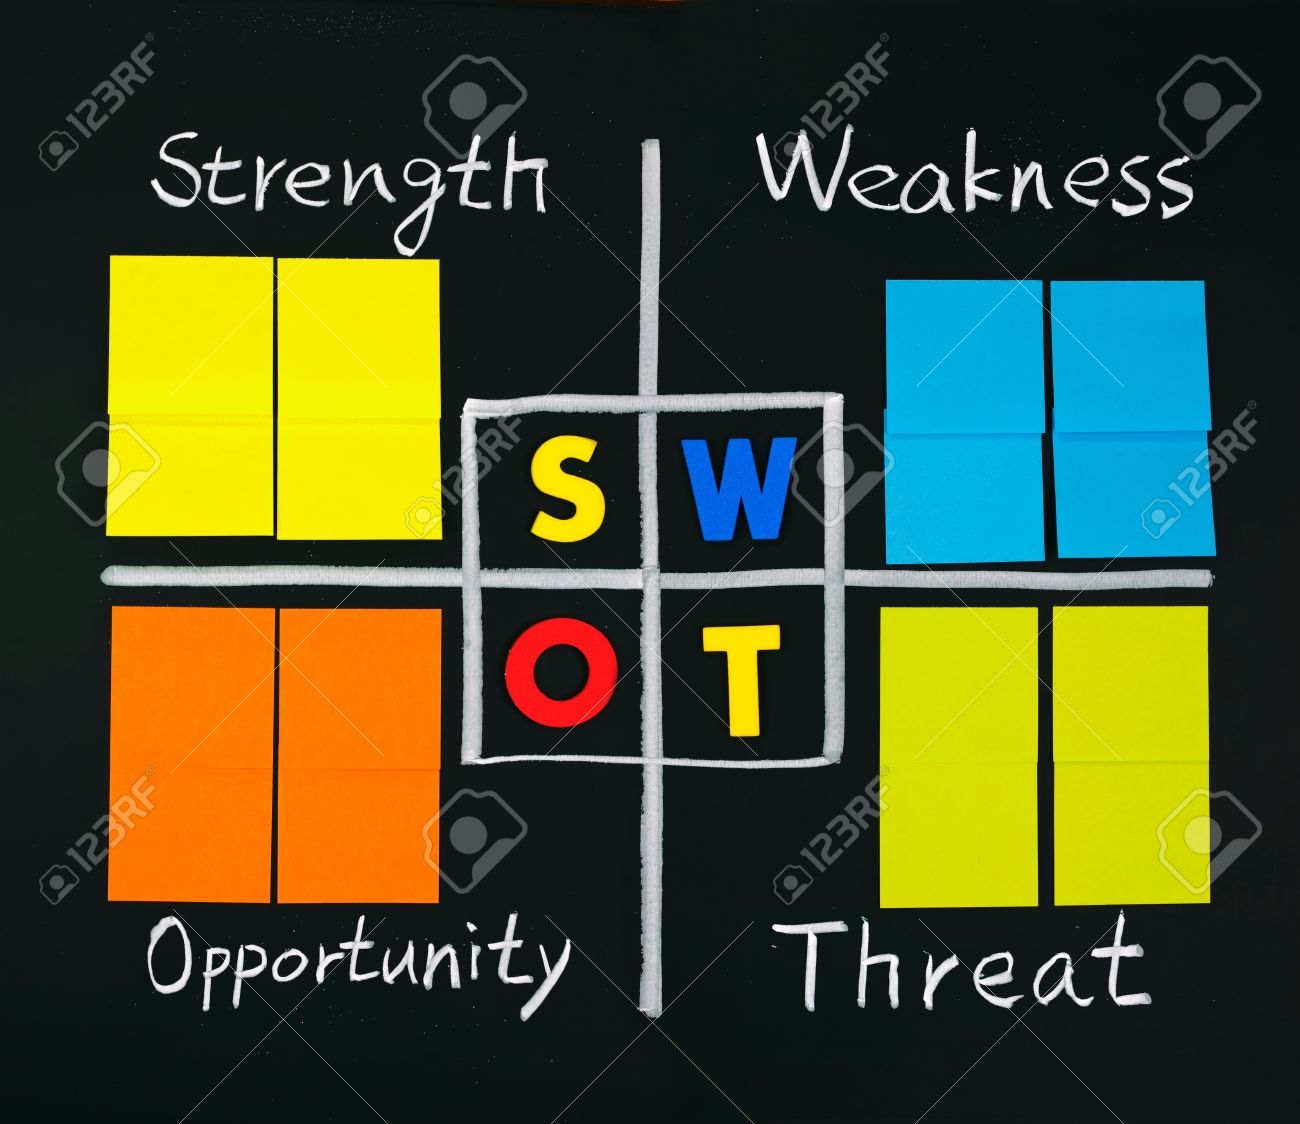 swot analysis note papers strength weakness opportunity swot analysis note papers strength weakness opportunity and threat words on